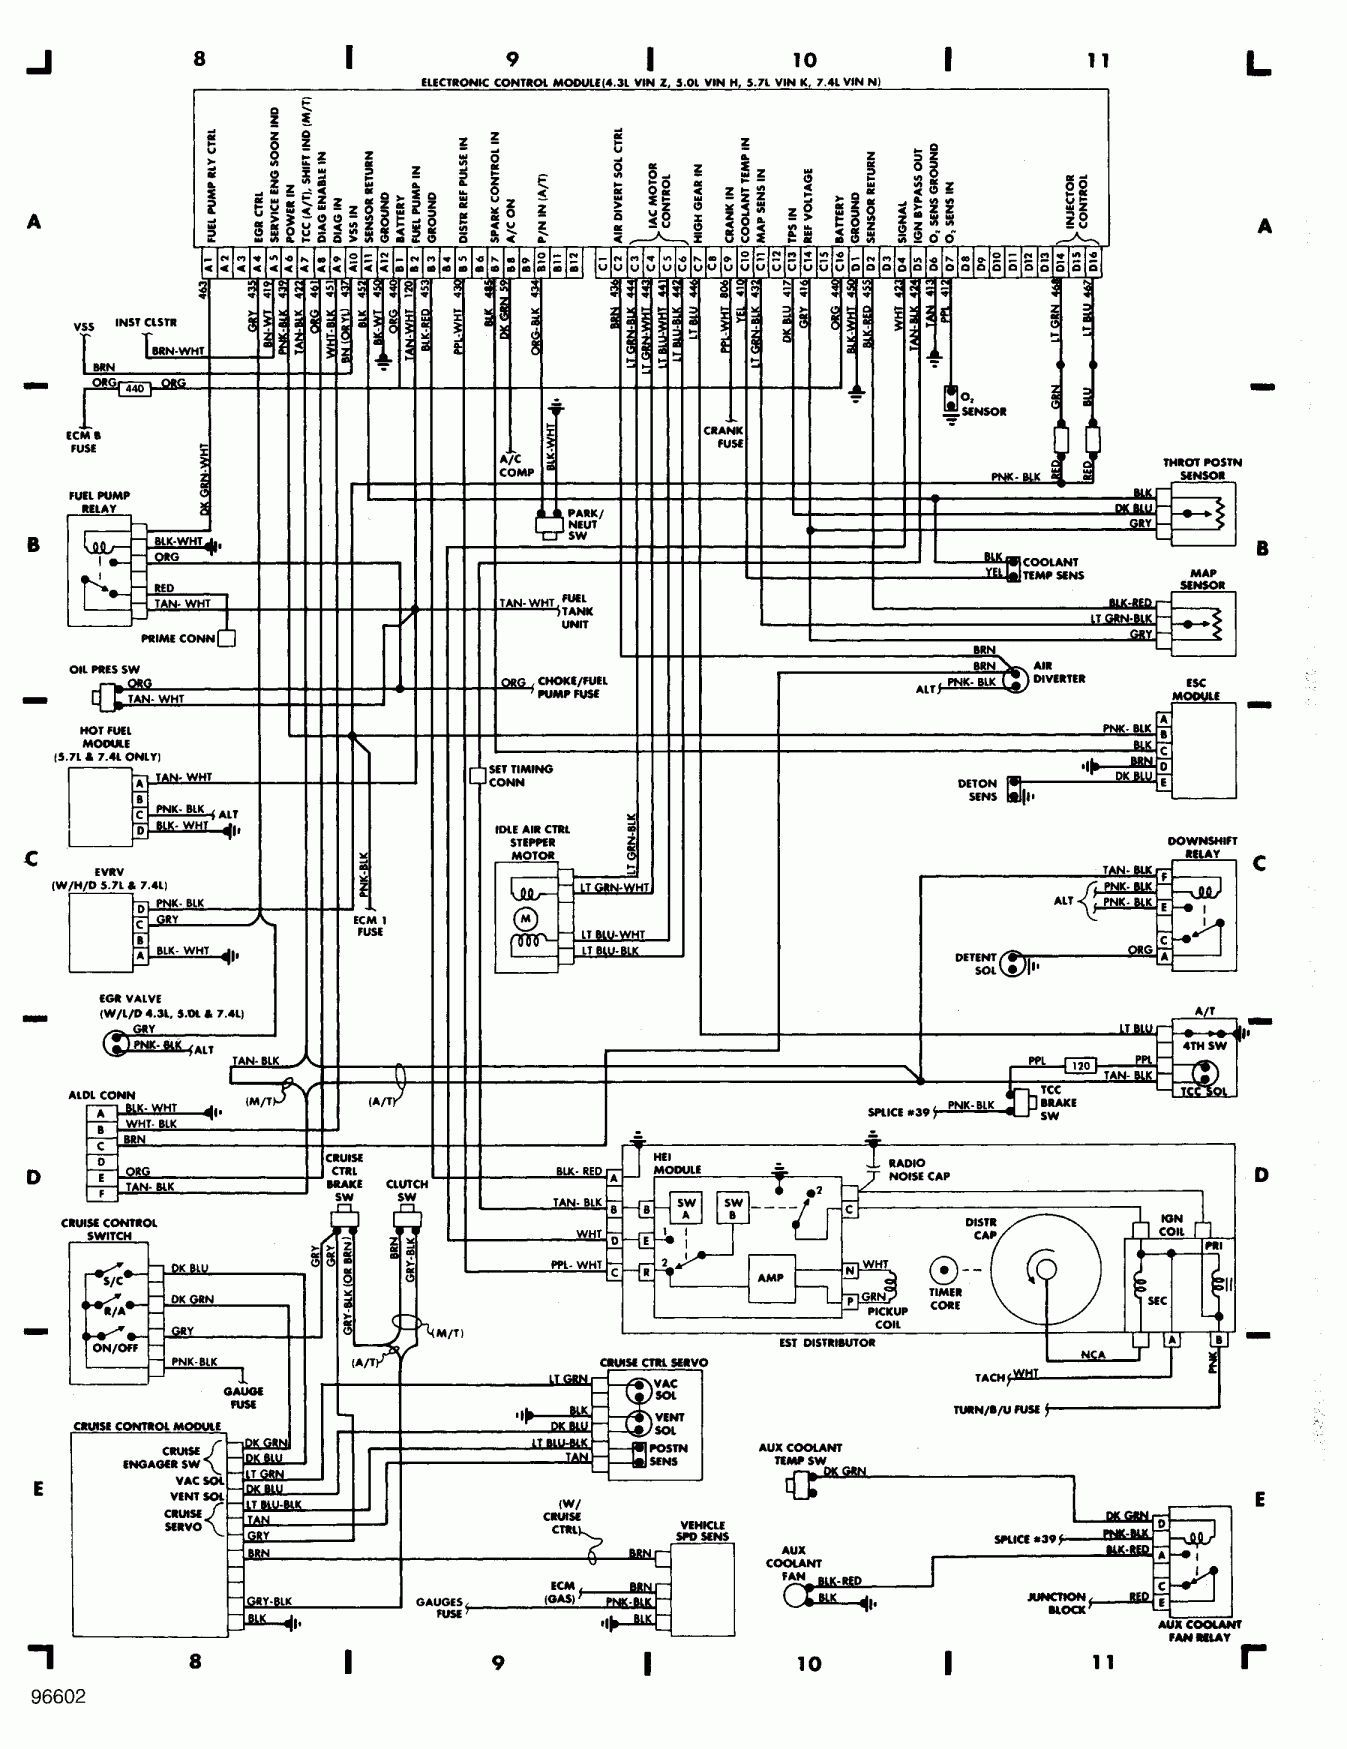 Wiring Diagram For 57 Thunderbird Schematic And Wiring Diagram In 2020 Chevy 1500 Chevrolet Astro Ferrari Convertible